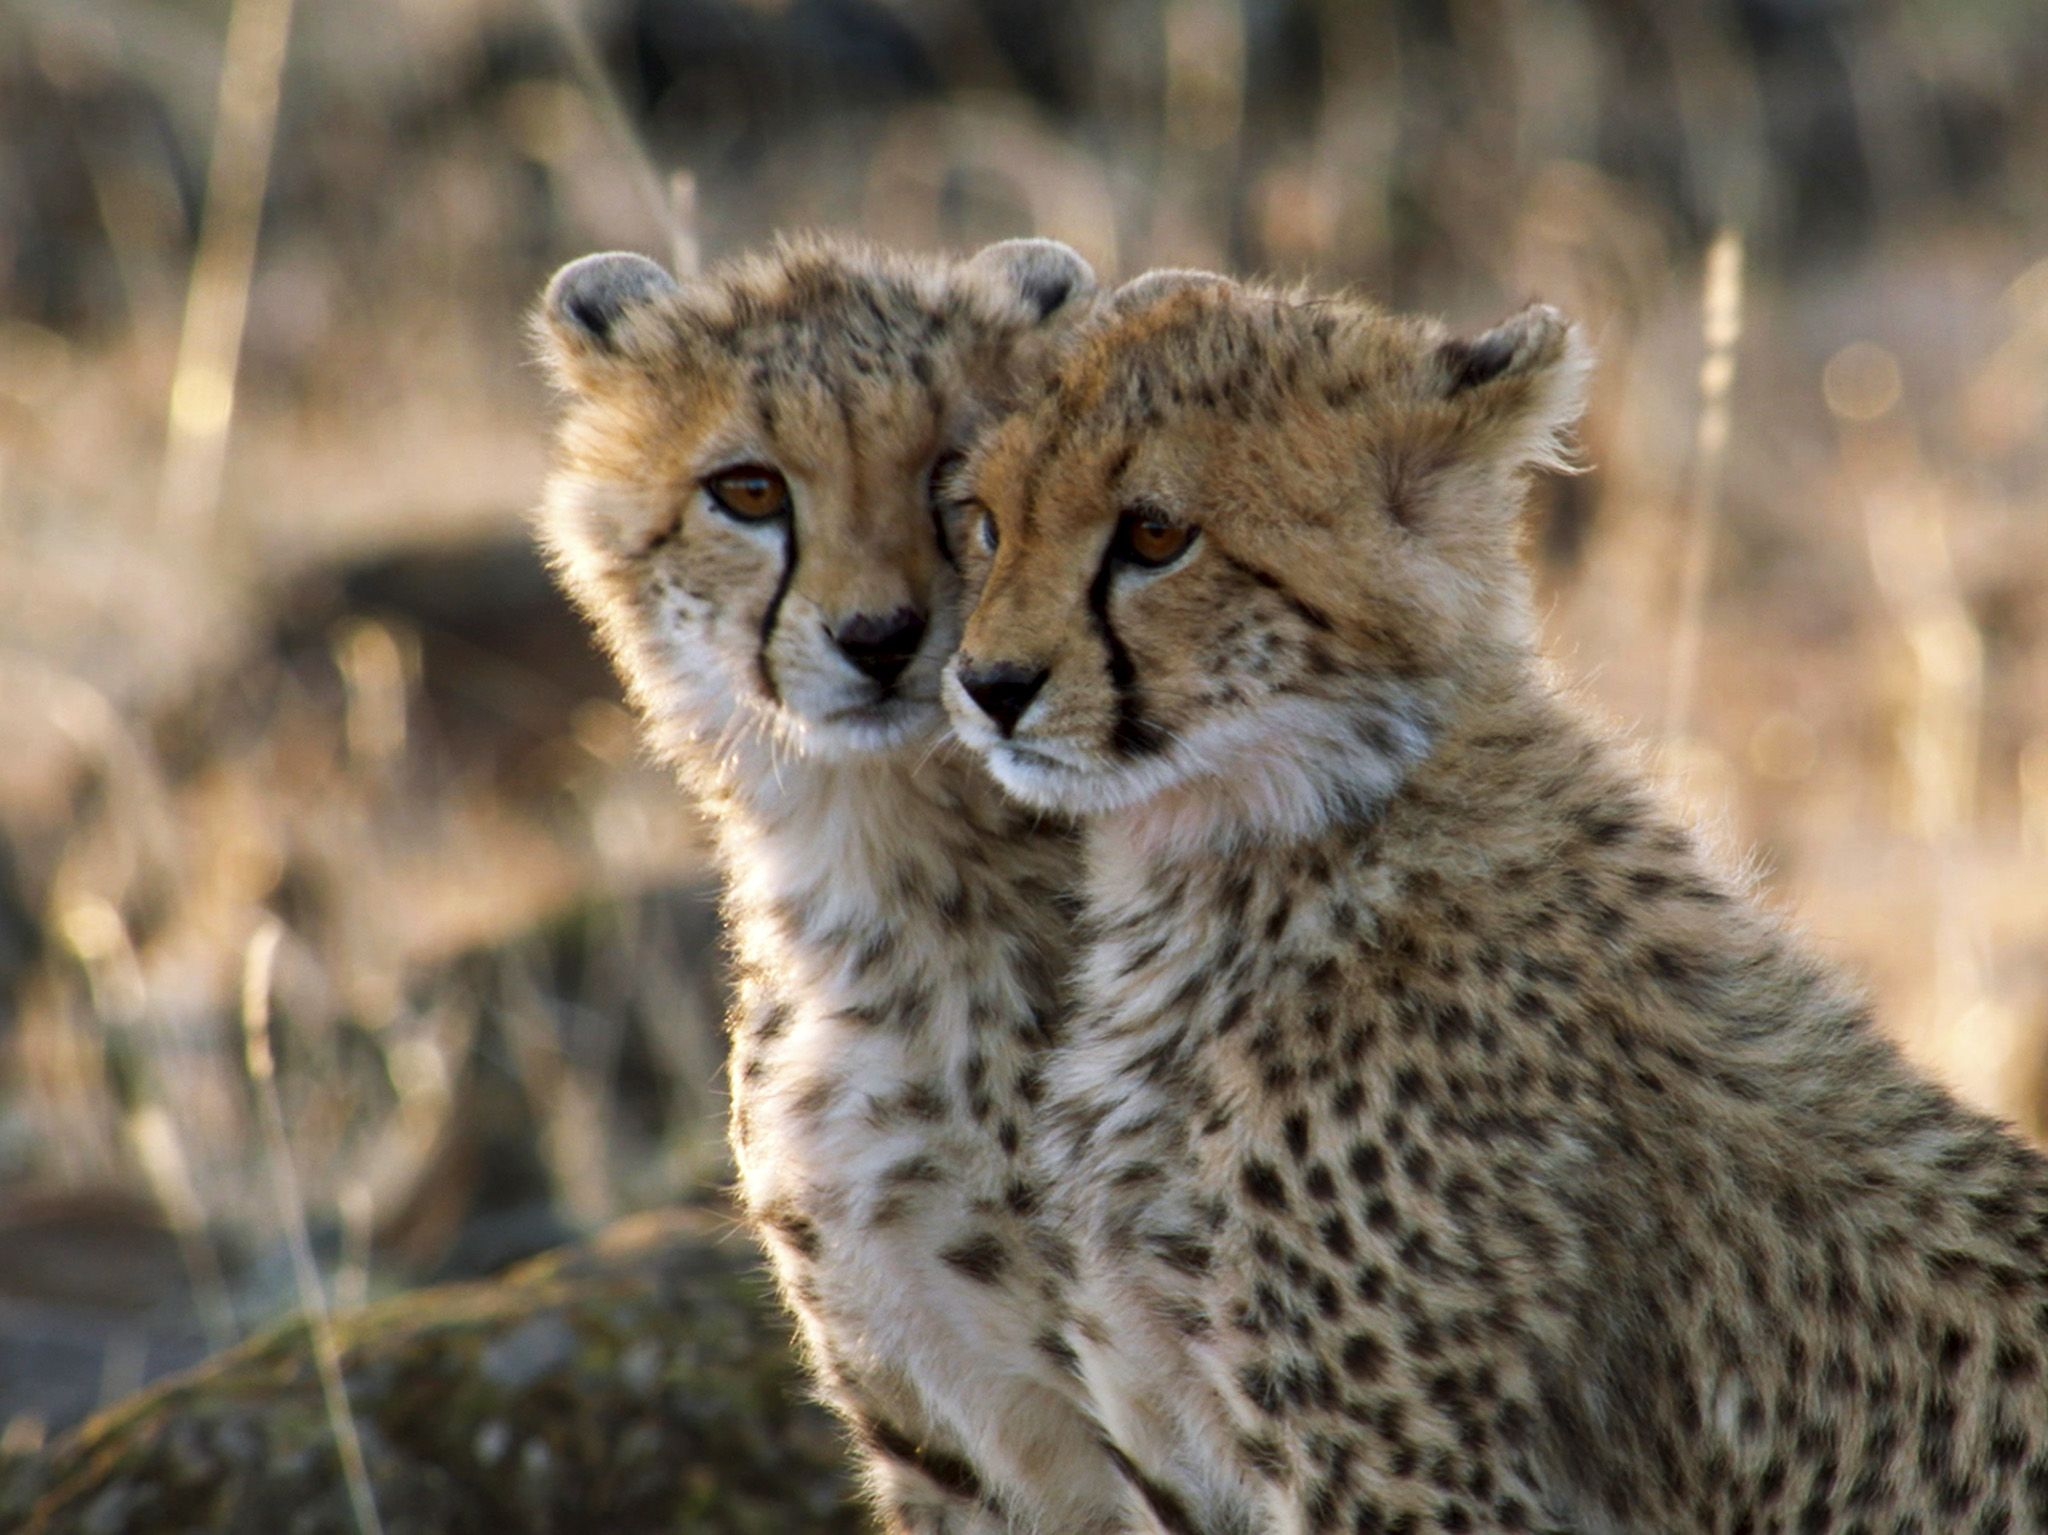 Naboisho, Kenya:  Two cheetah cubs. This image is from Man Among Cheetahs. [Foto del giorno - gennaio 2018]